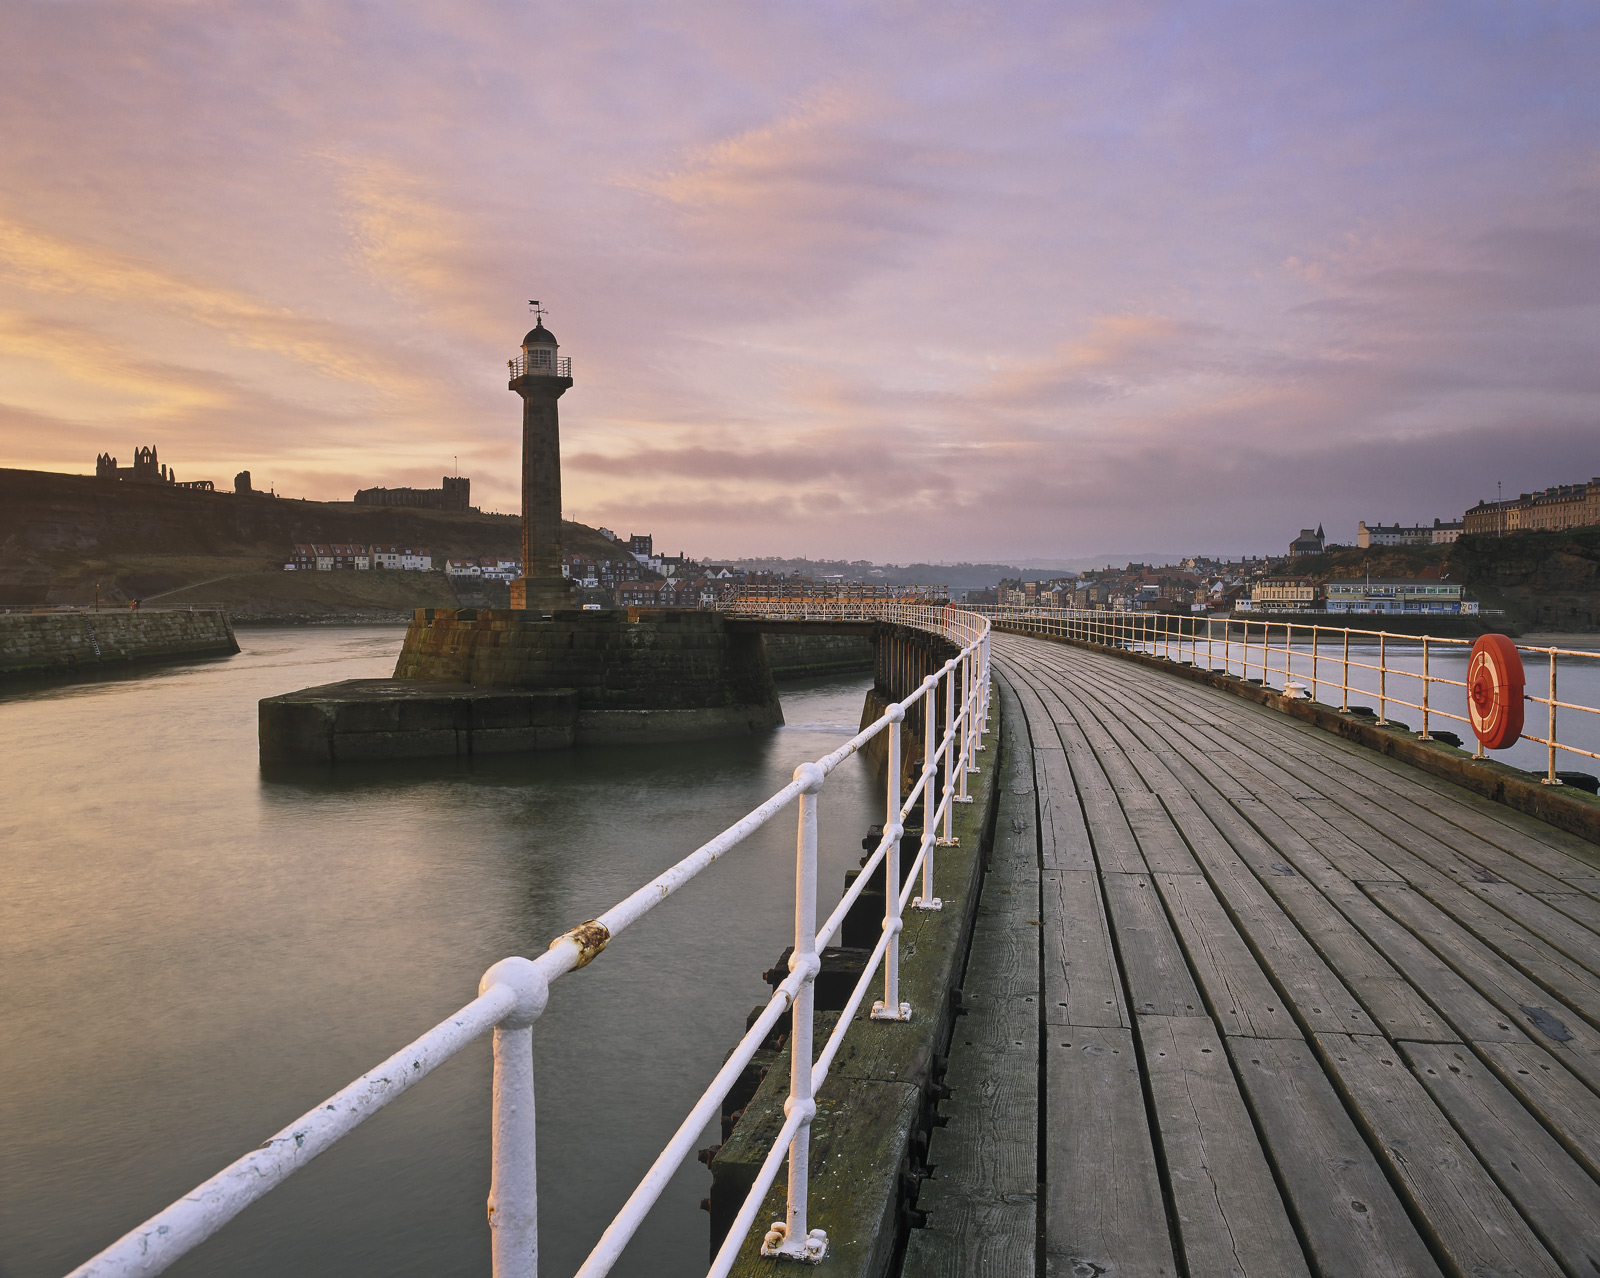 I had the pleasure of watching a gentle sunrise materialise over the quays at Whitby. The curved leading lines of the sunlit...